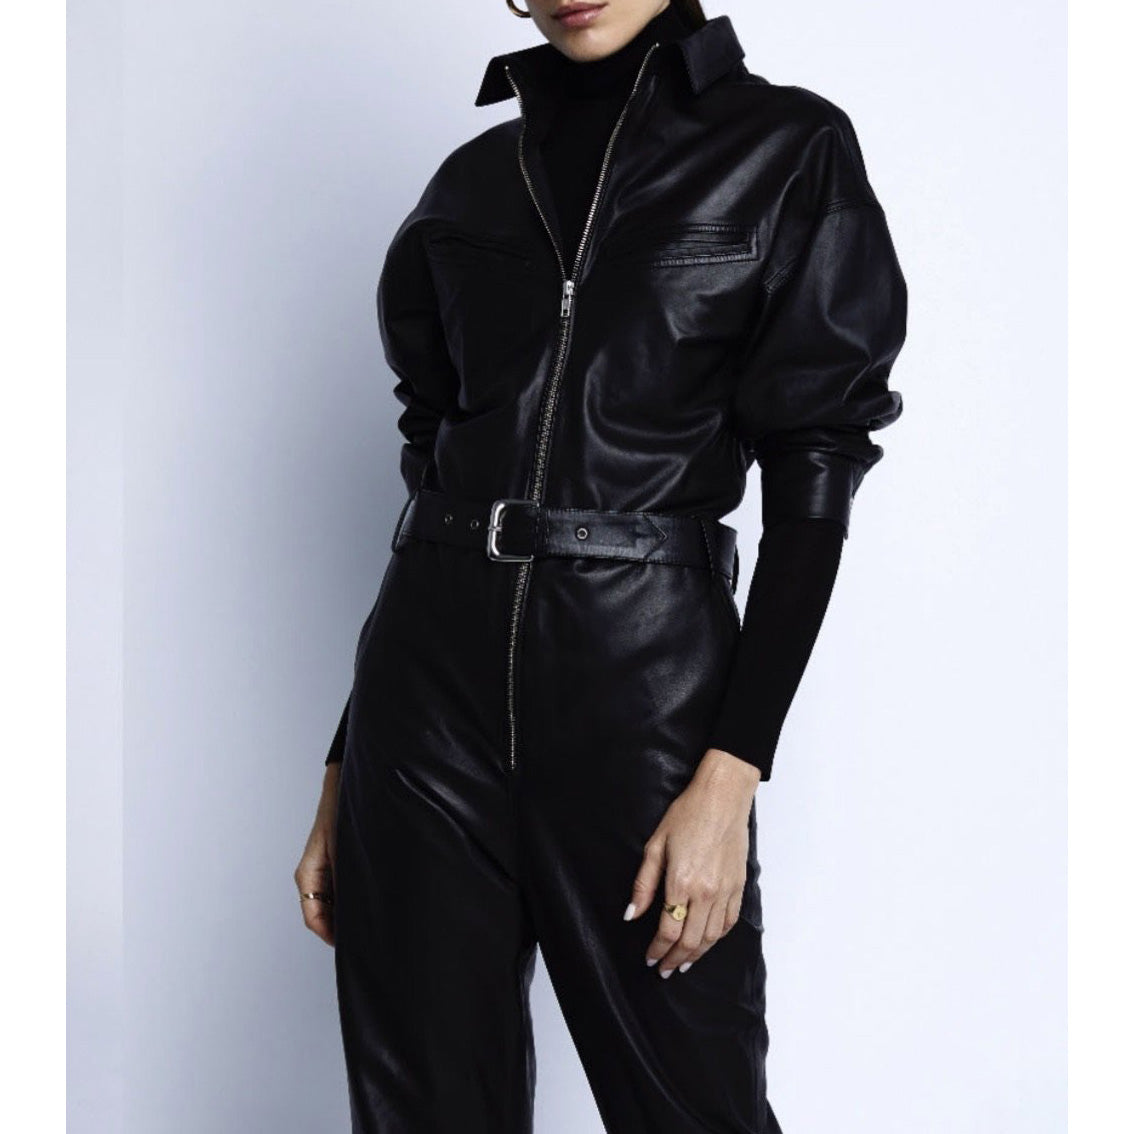 Vegan leather jumpsuit